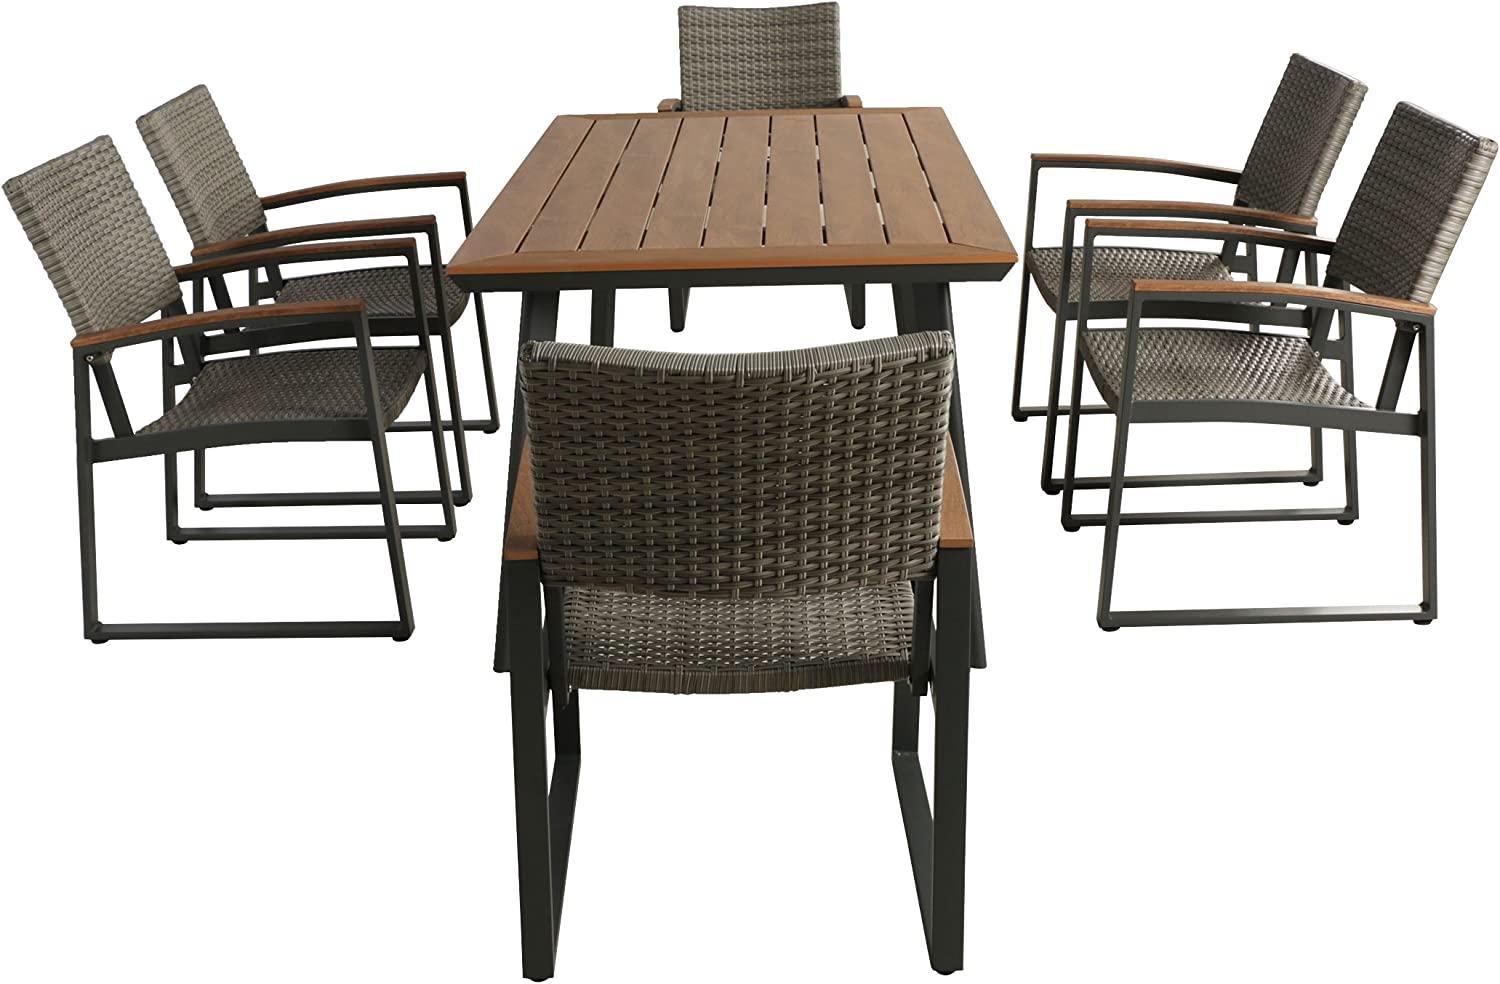 Christopher Knight Home Loren Outdoor 7 Piece Aluminum and Wicker Dining Set with Wood Top, Natural Finish and Gray